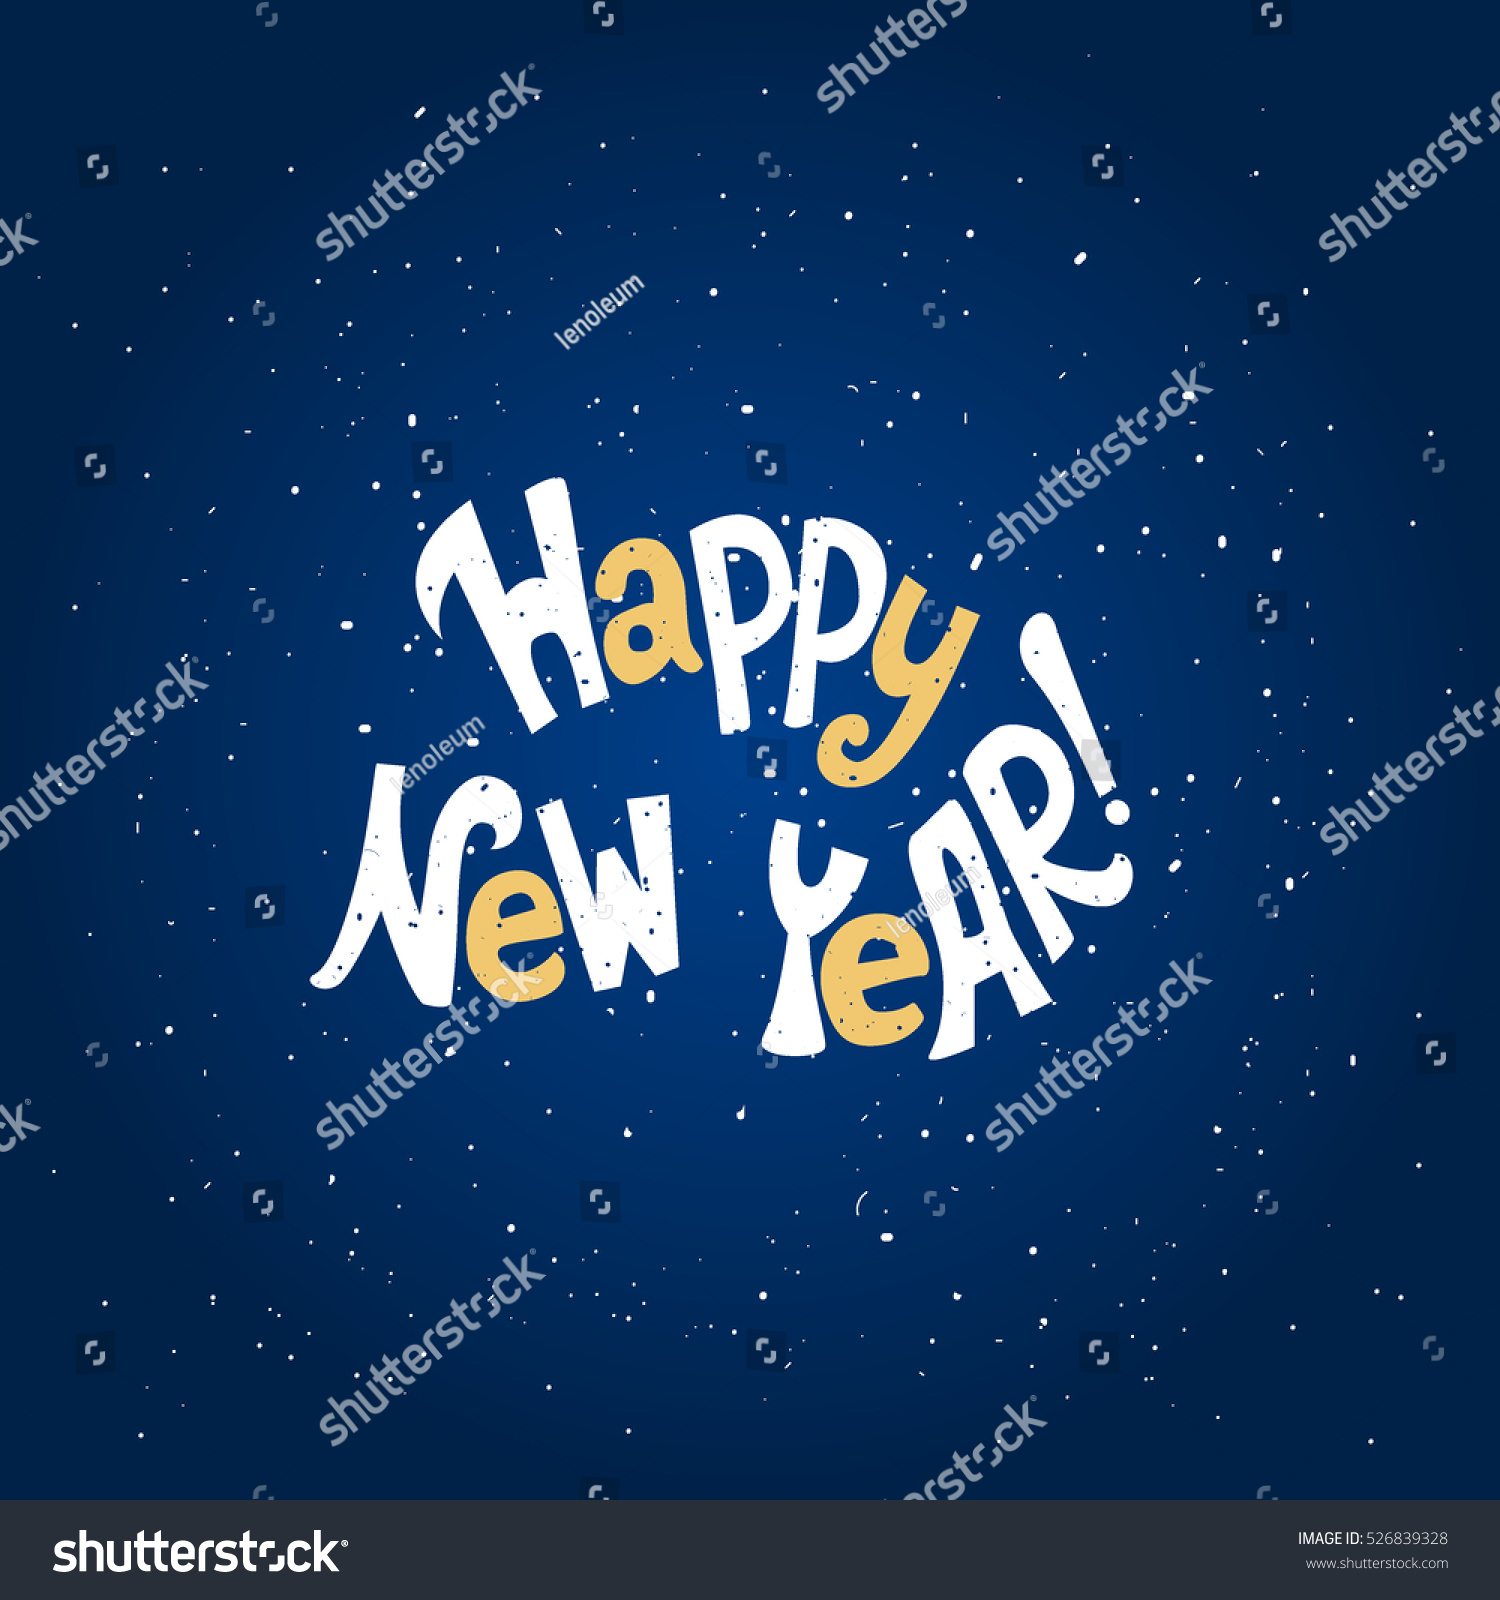 happy new yearhand lettering quote vector illustration great choice for gift or